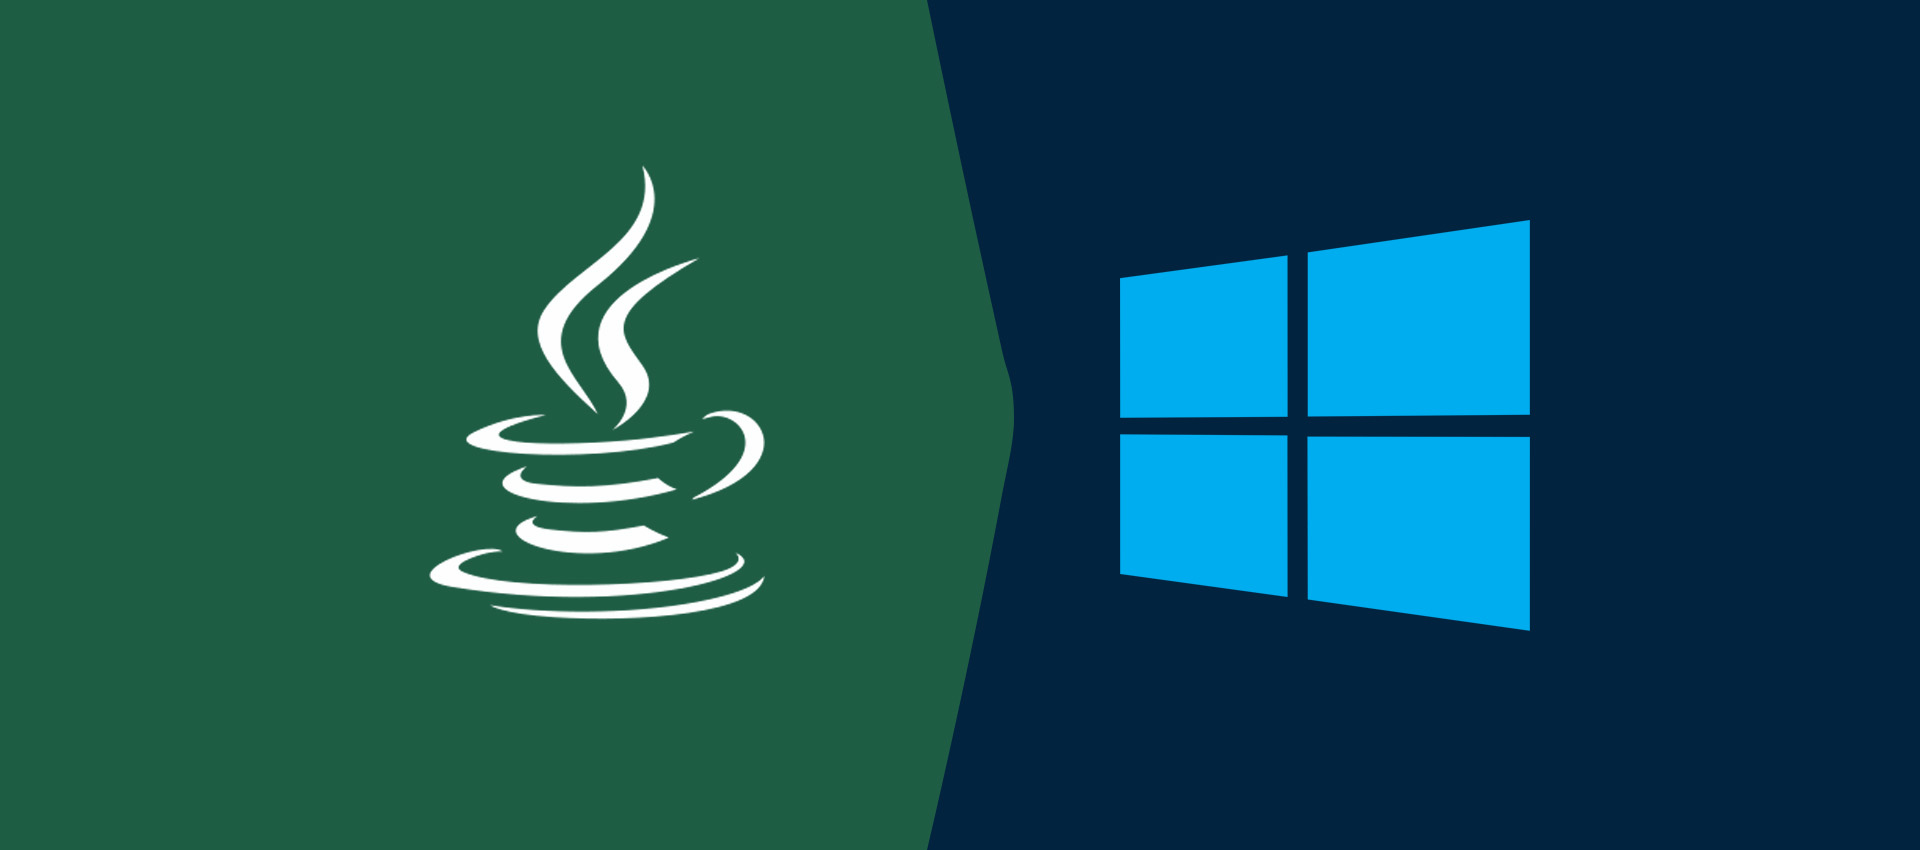 How To Install Java 16 On Windows